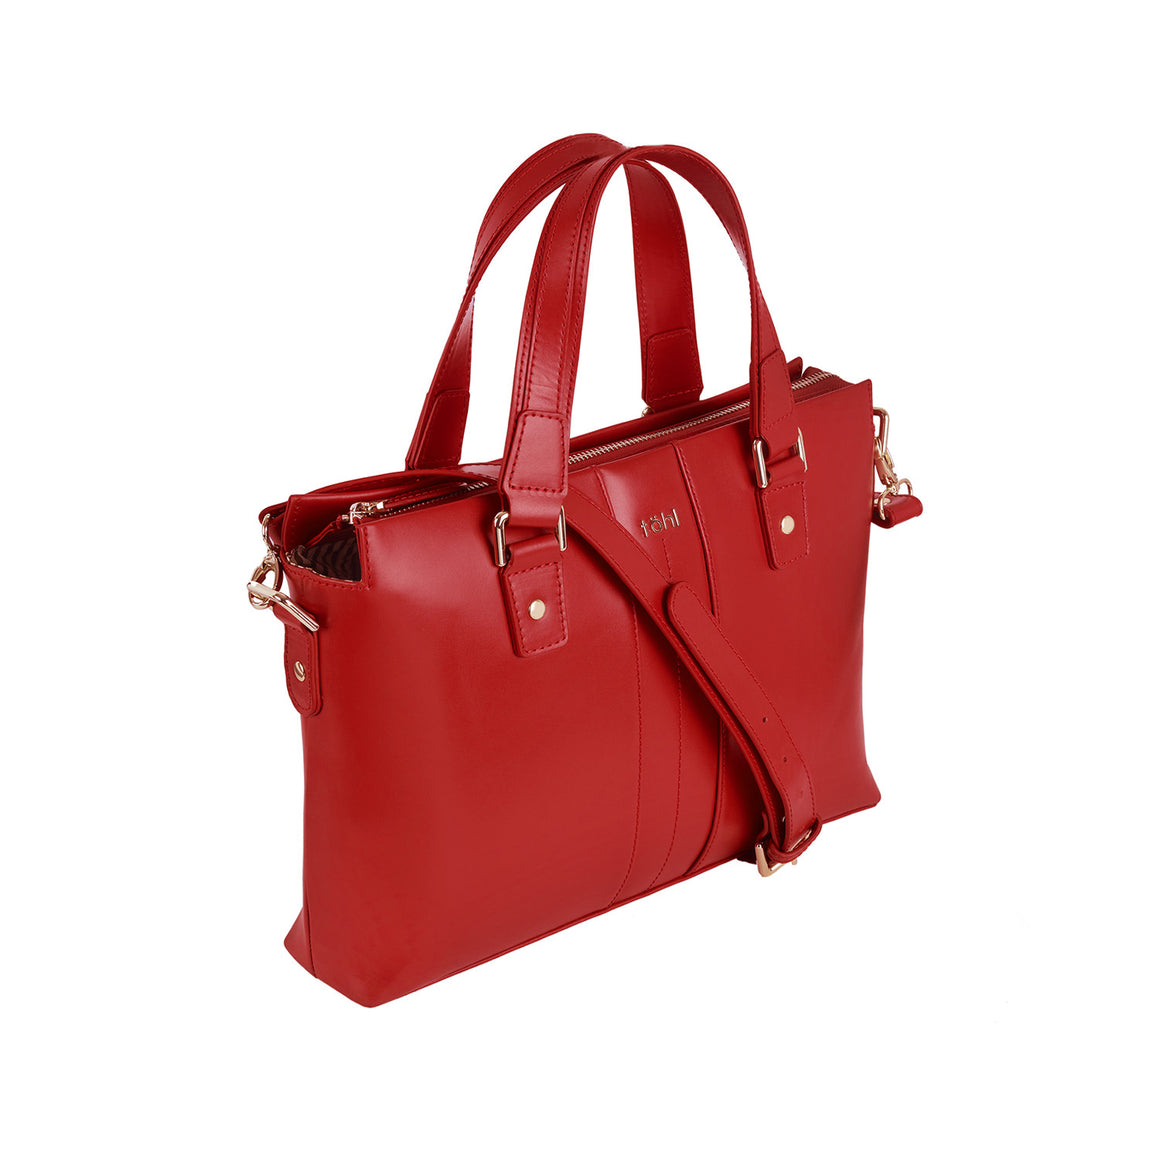 HH 0011 - TOHL WORTH WOMEN'S VALISE - SPICE RED